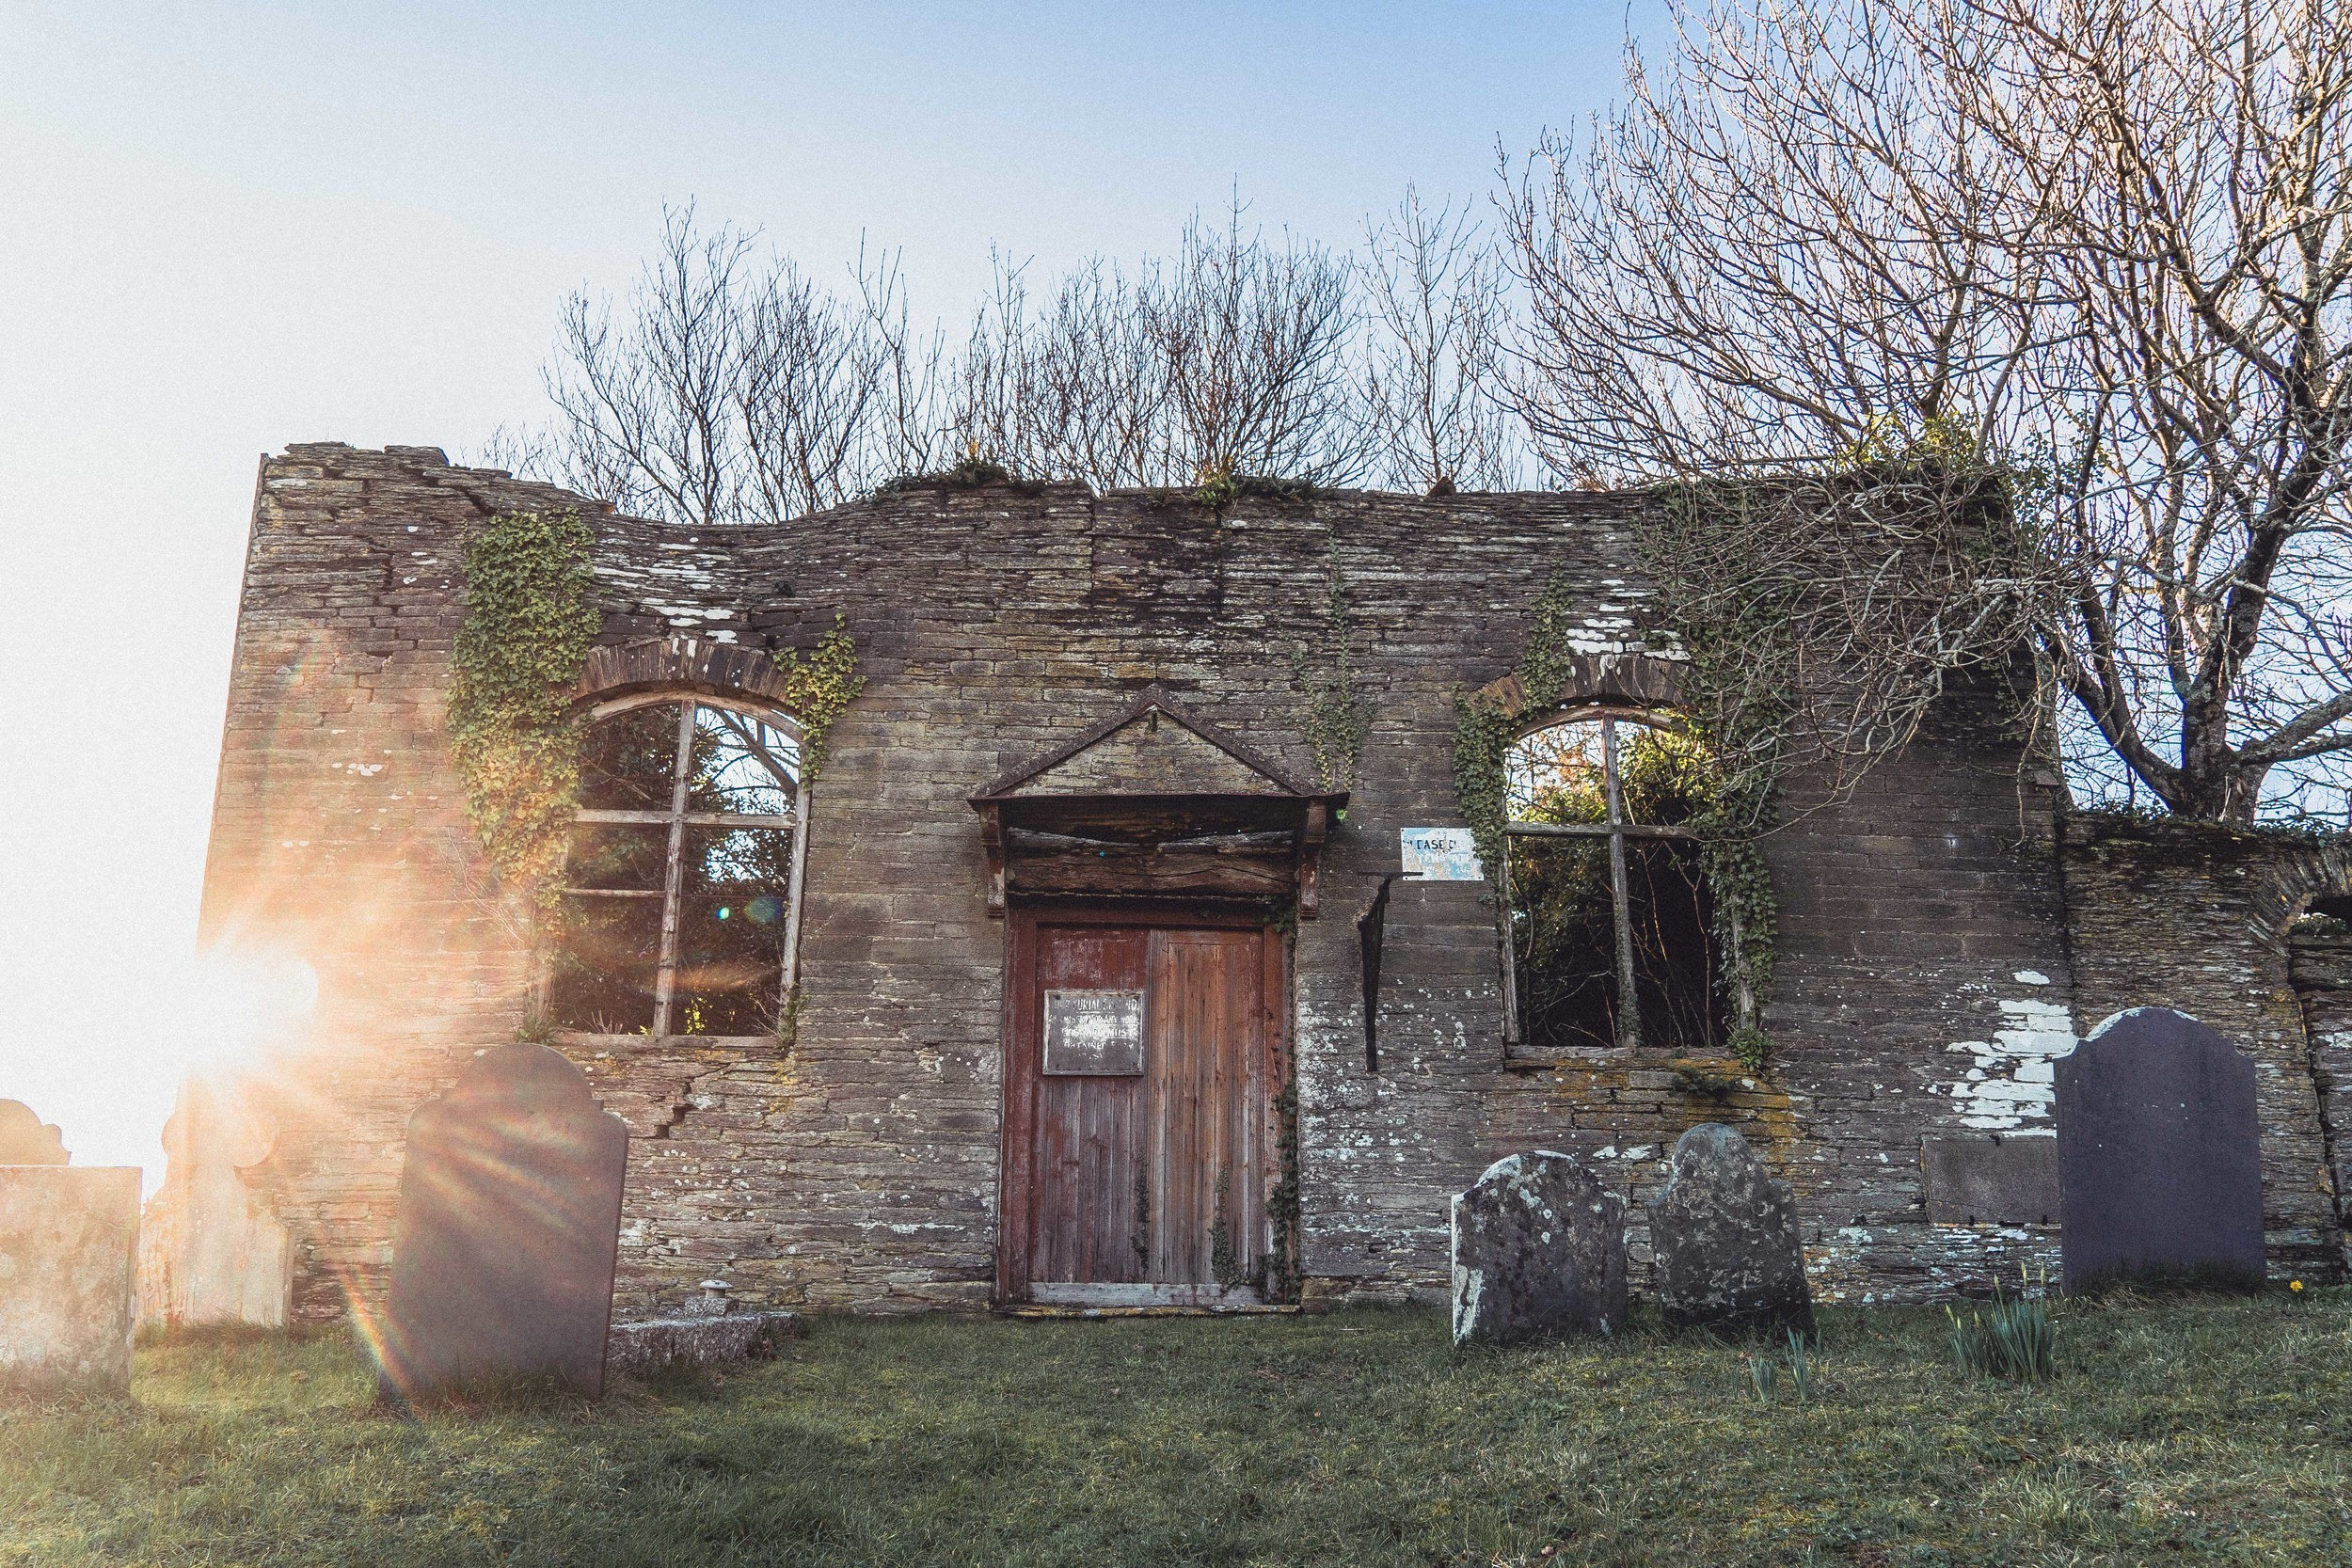 Exploring the Ruins of an Abandoned Chapel at Ford, South Hams, South Devon, England